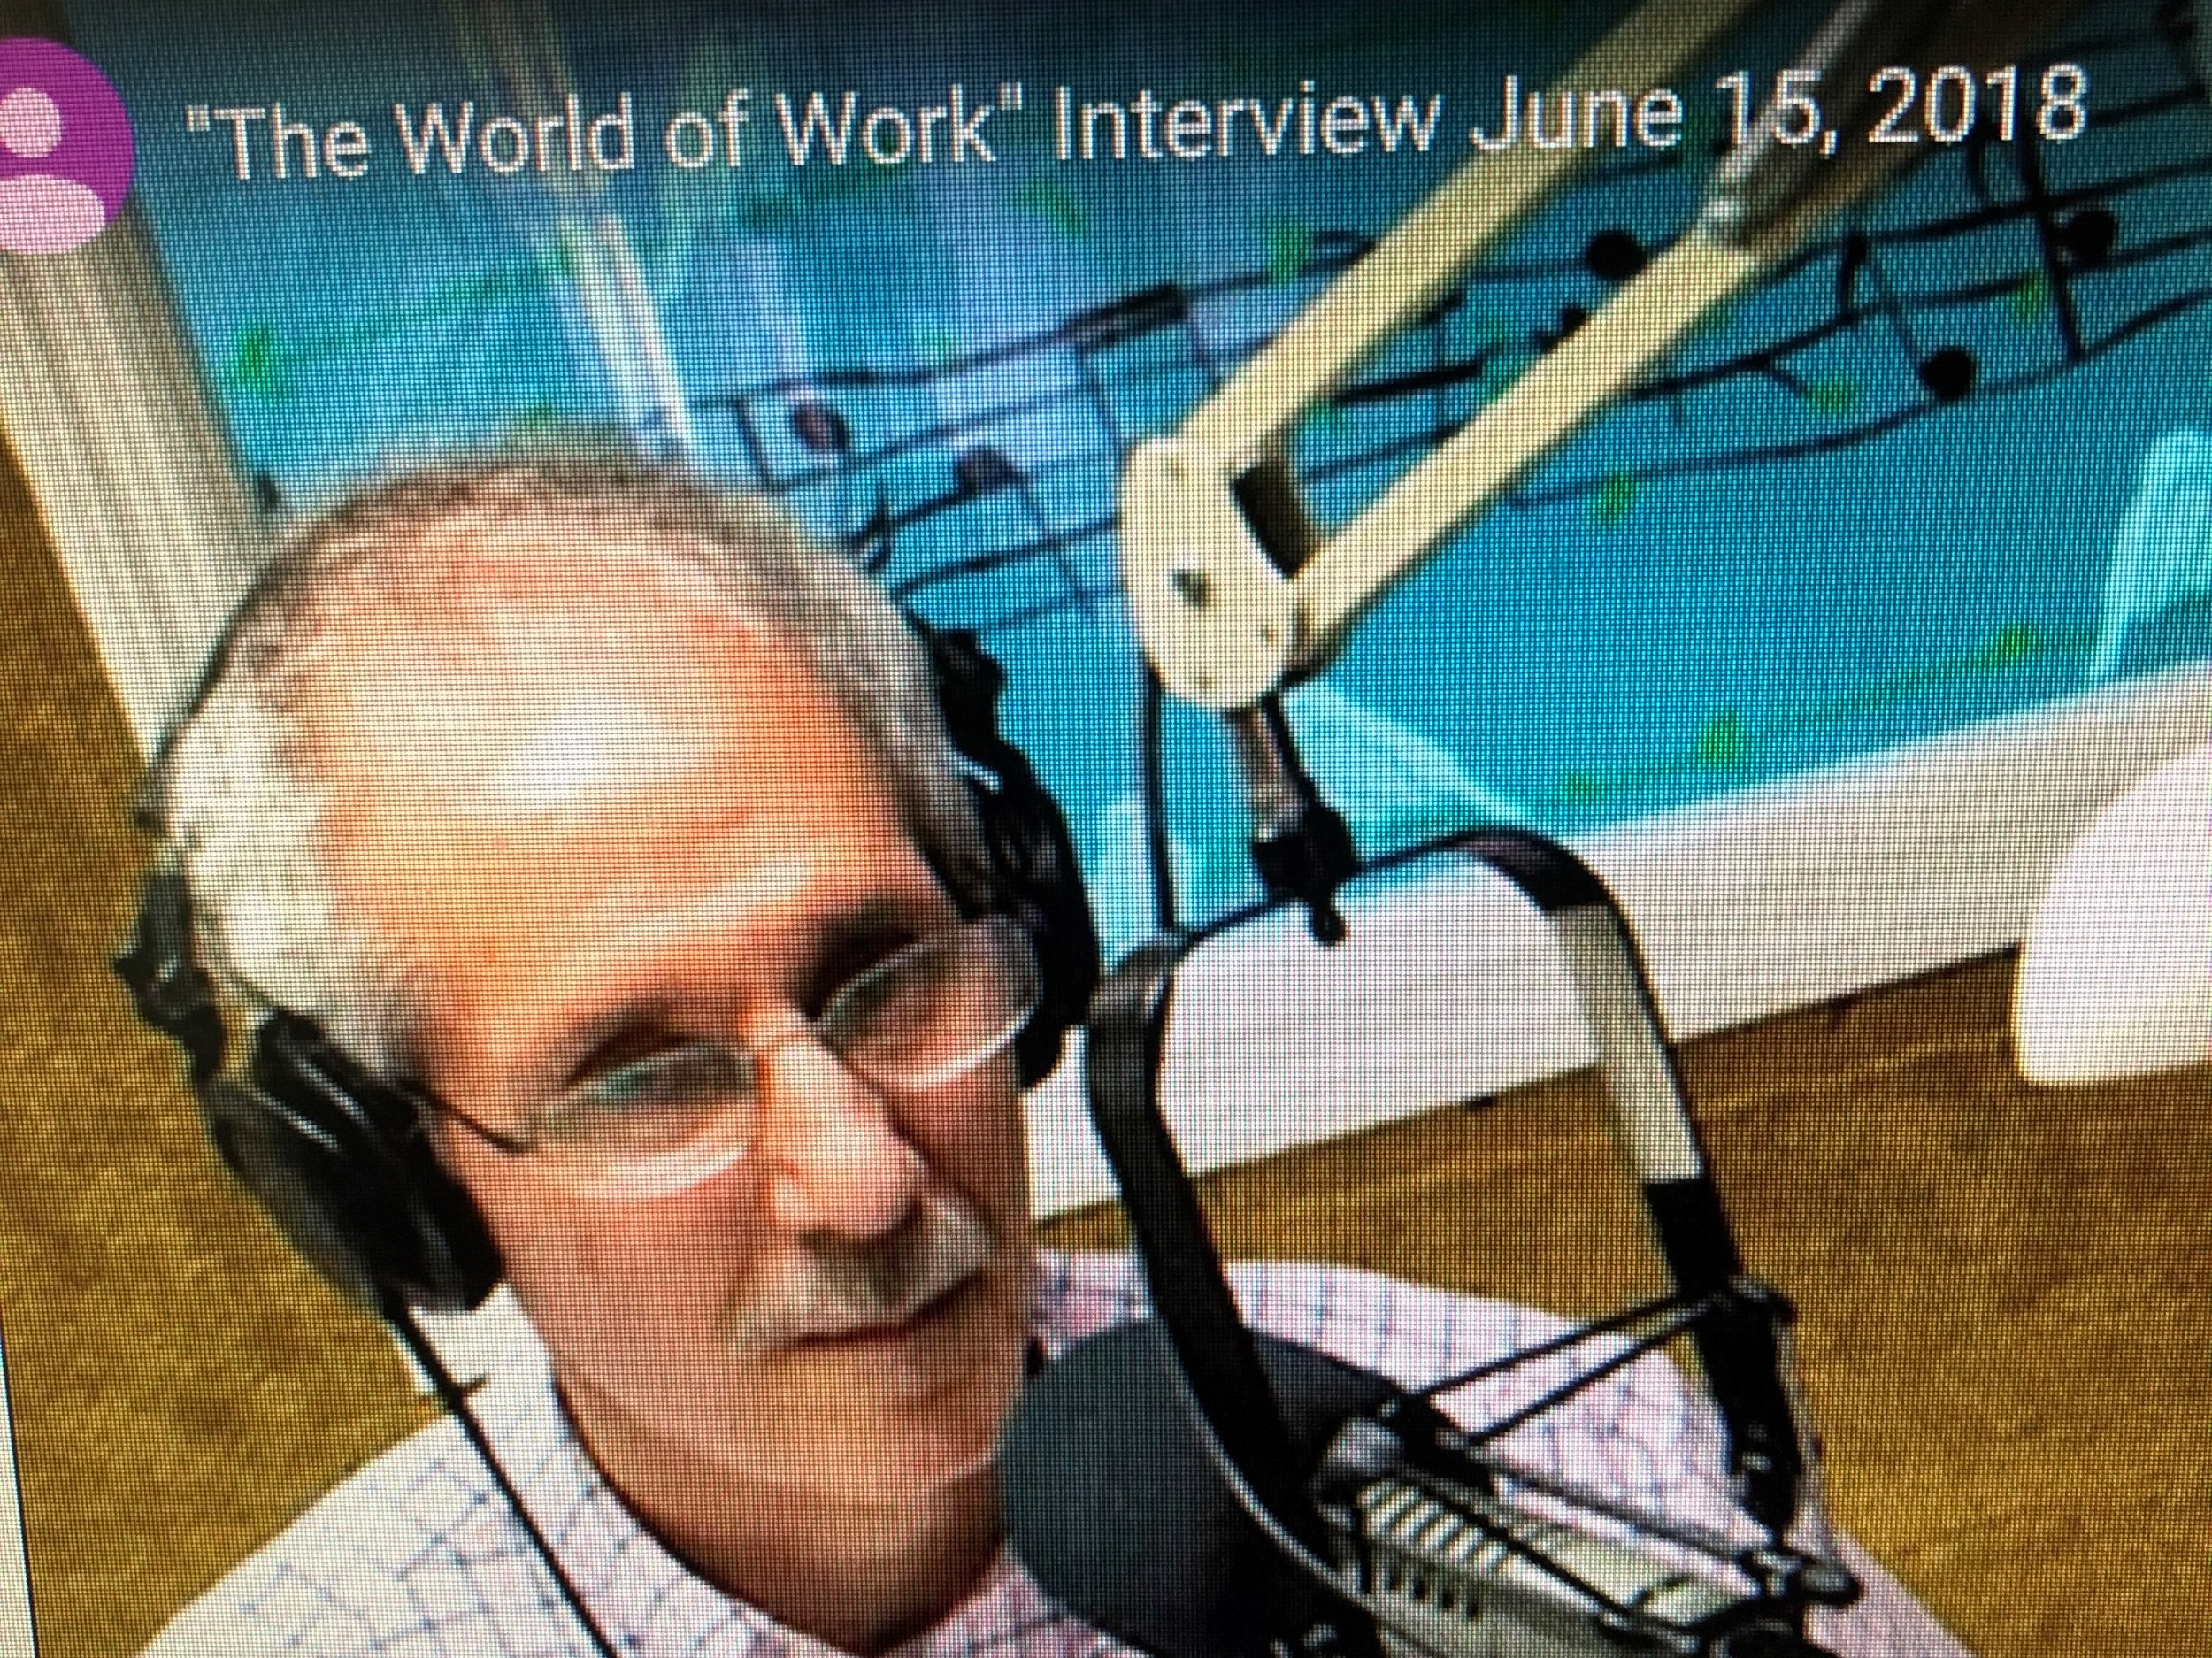 Shep on the air - WDVR-FM Fridays at 4:00 PM EDT The first show of  The World of Work with Shep Cohen  aired on July 11, 1997